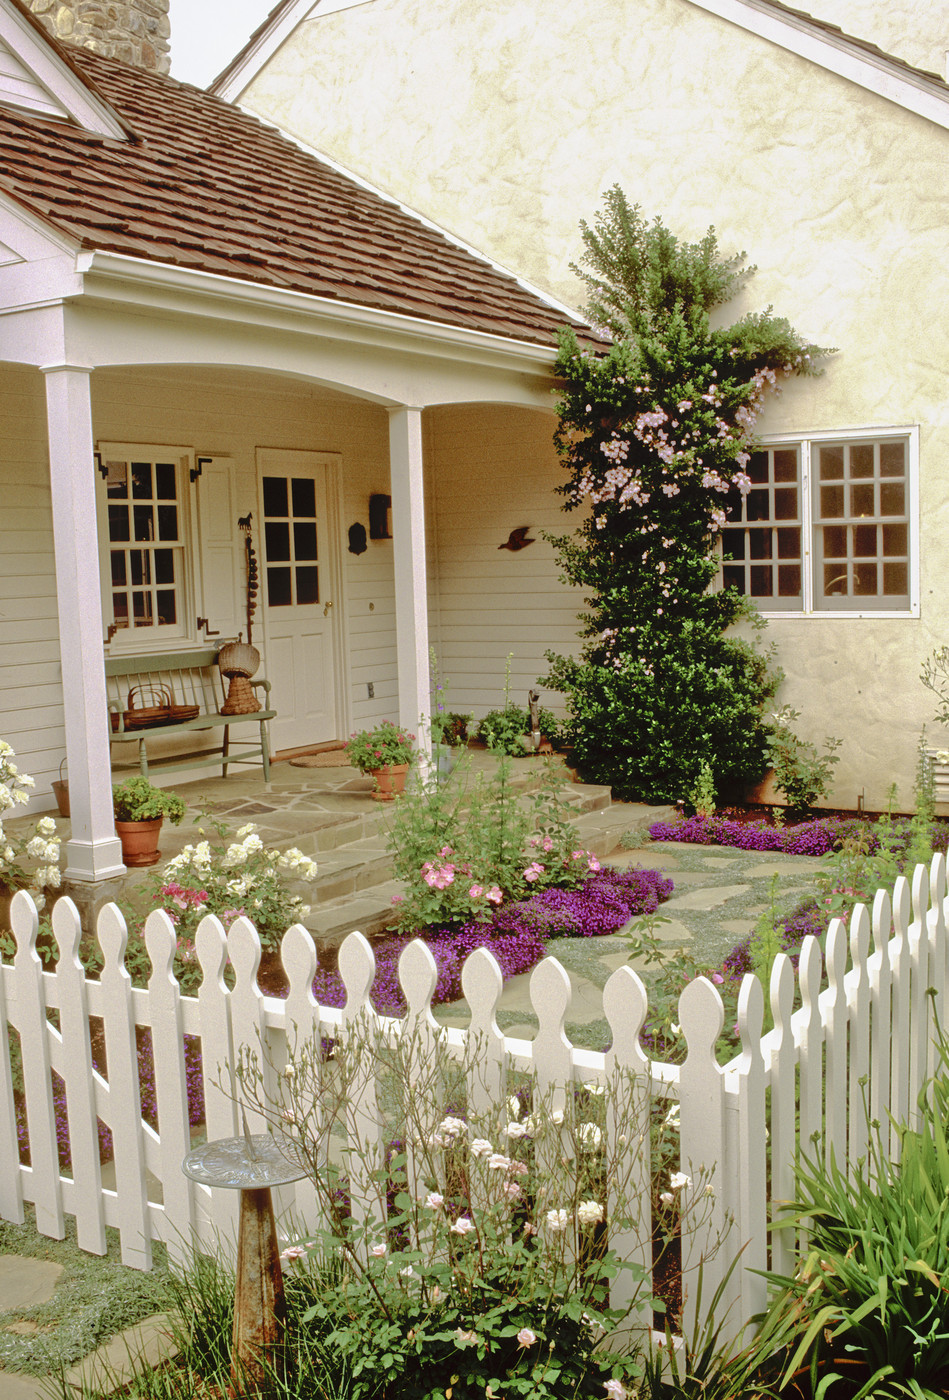 Outstanding Picket Fence Photos 4 Of 11 Home Interior And Landscaping Ferensignezvosmurscom